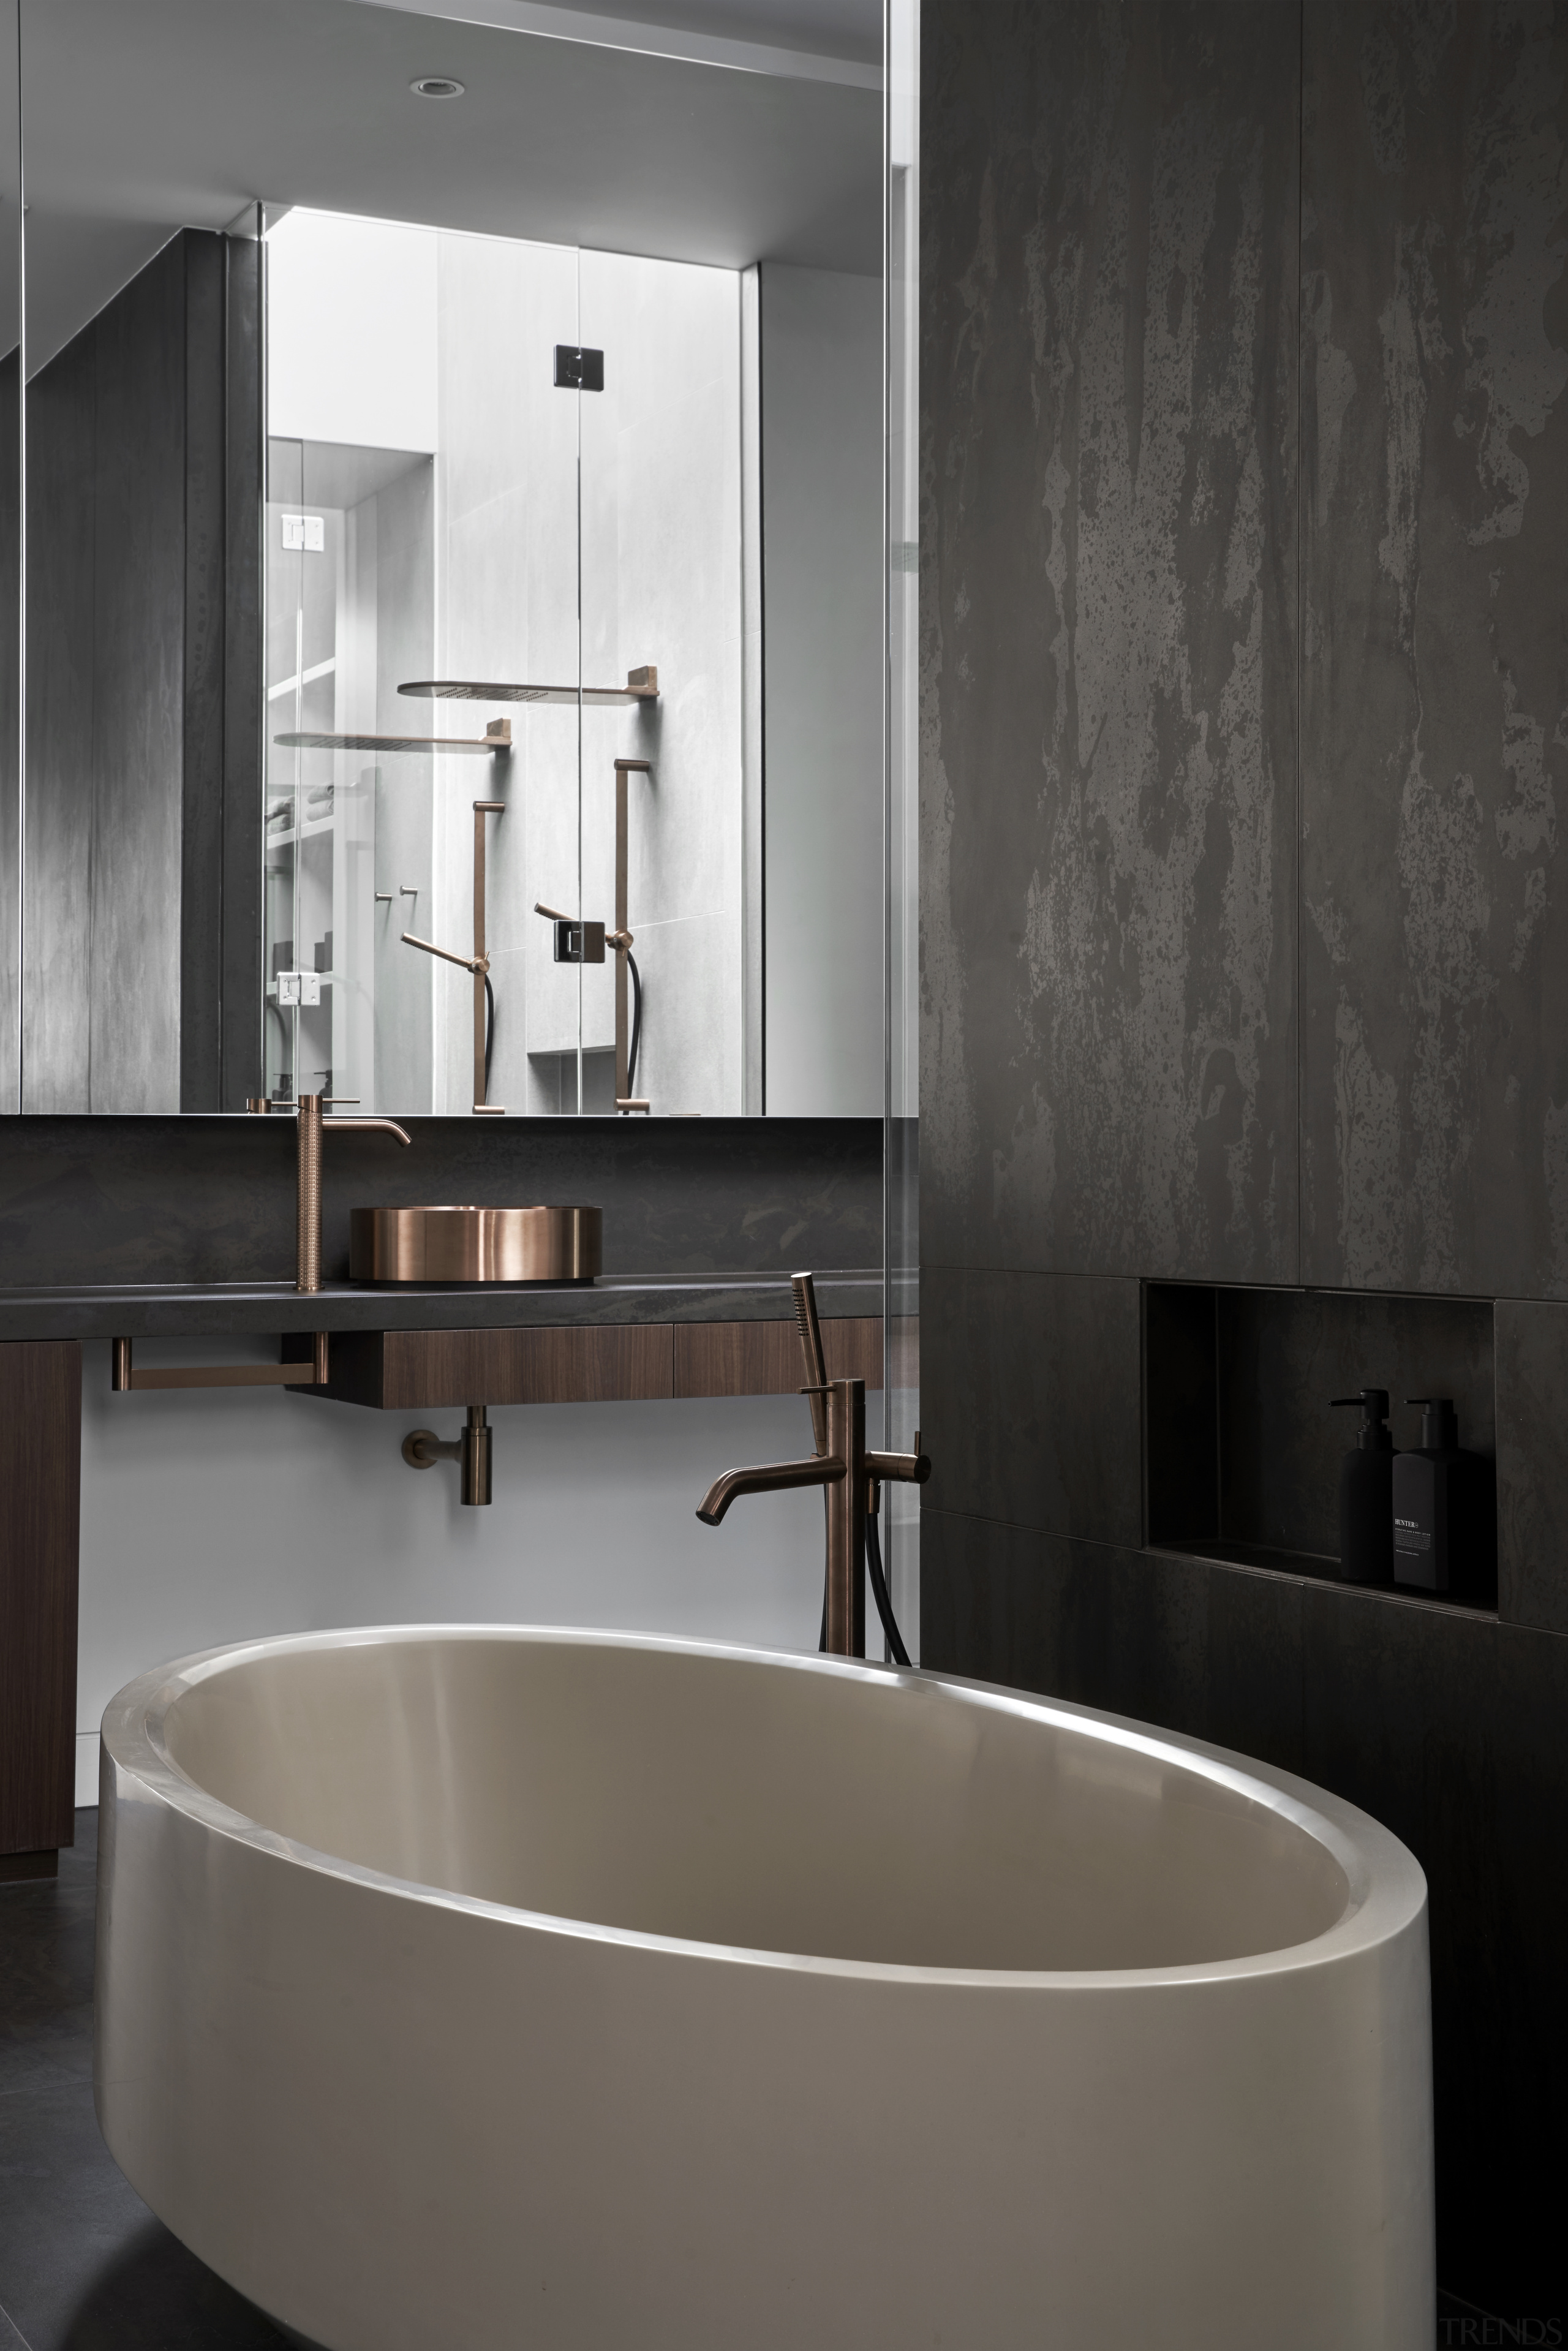 Copper fittings in the main bathroom are echoed